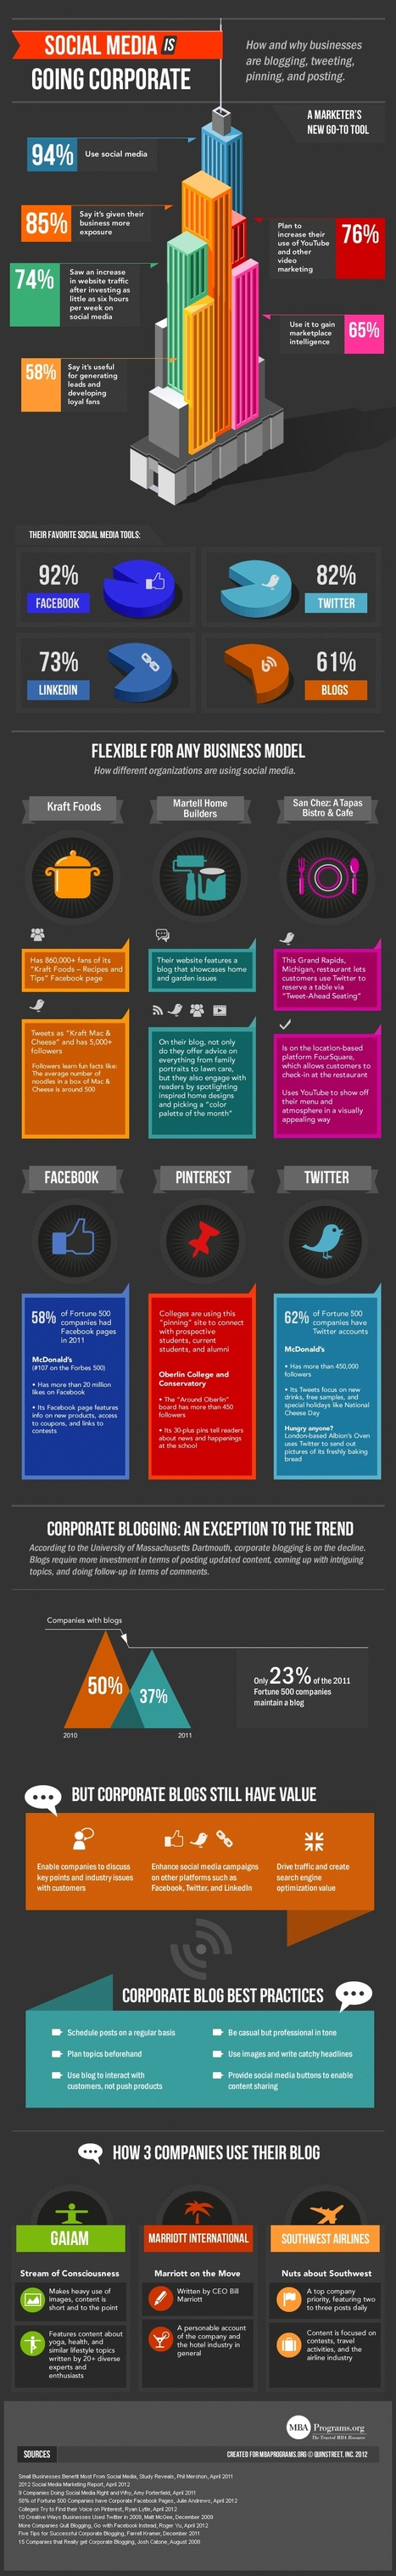 Social Media Is Going Corporate [INFOGRAPHIC] | MarketingHits | Scoop.it